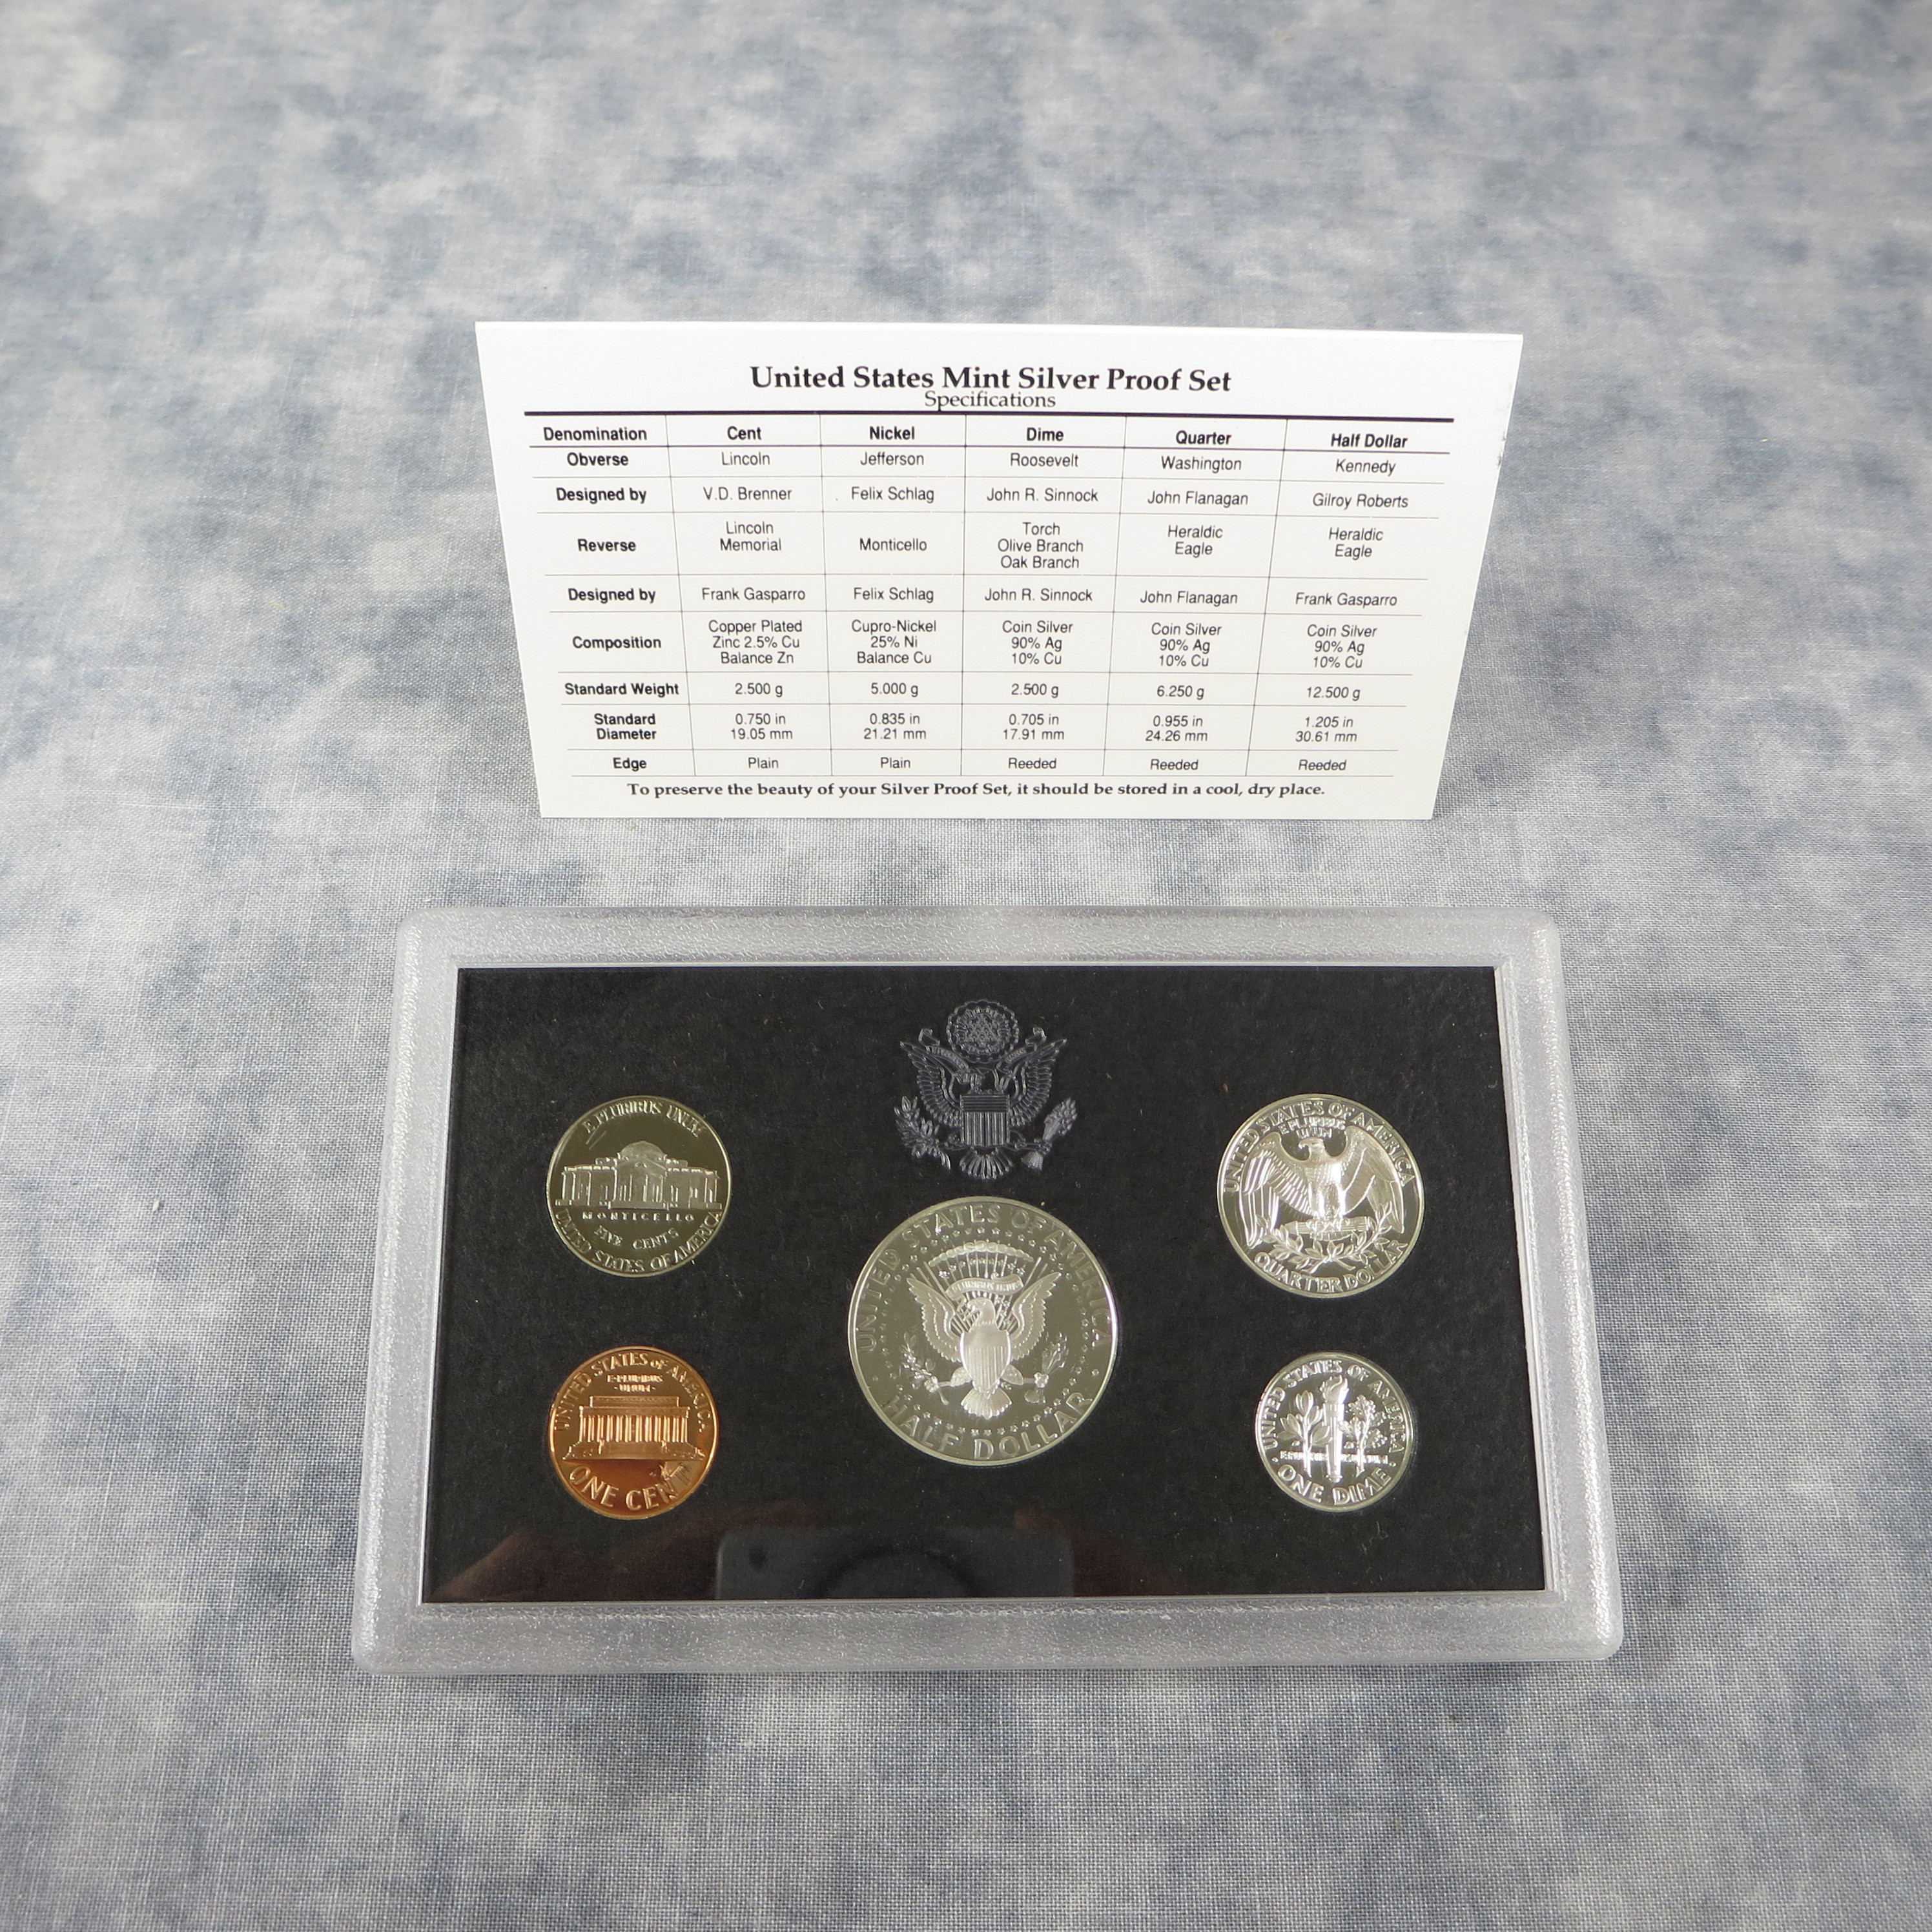 Awesome 1998 Silver Proof Set 5 Coins with Black Box & Coa Us Us Mint Silver Proof Set Of Awesome 41 Ideas Us Mint Silver Proof Set